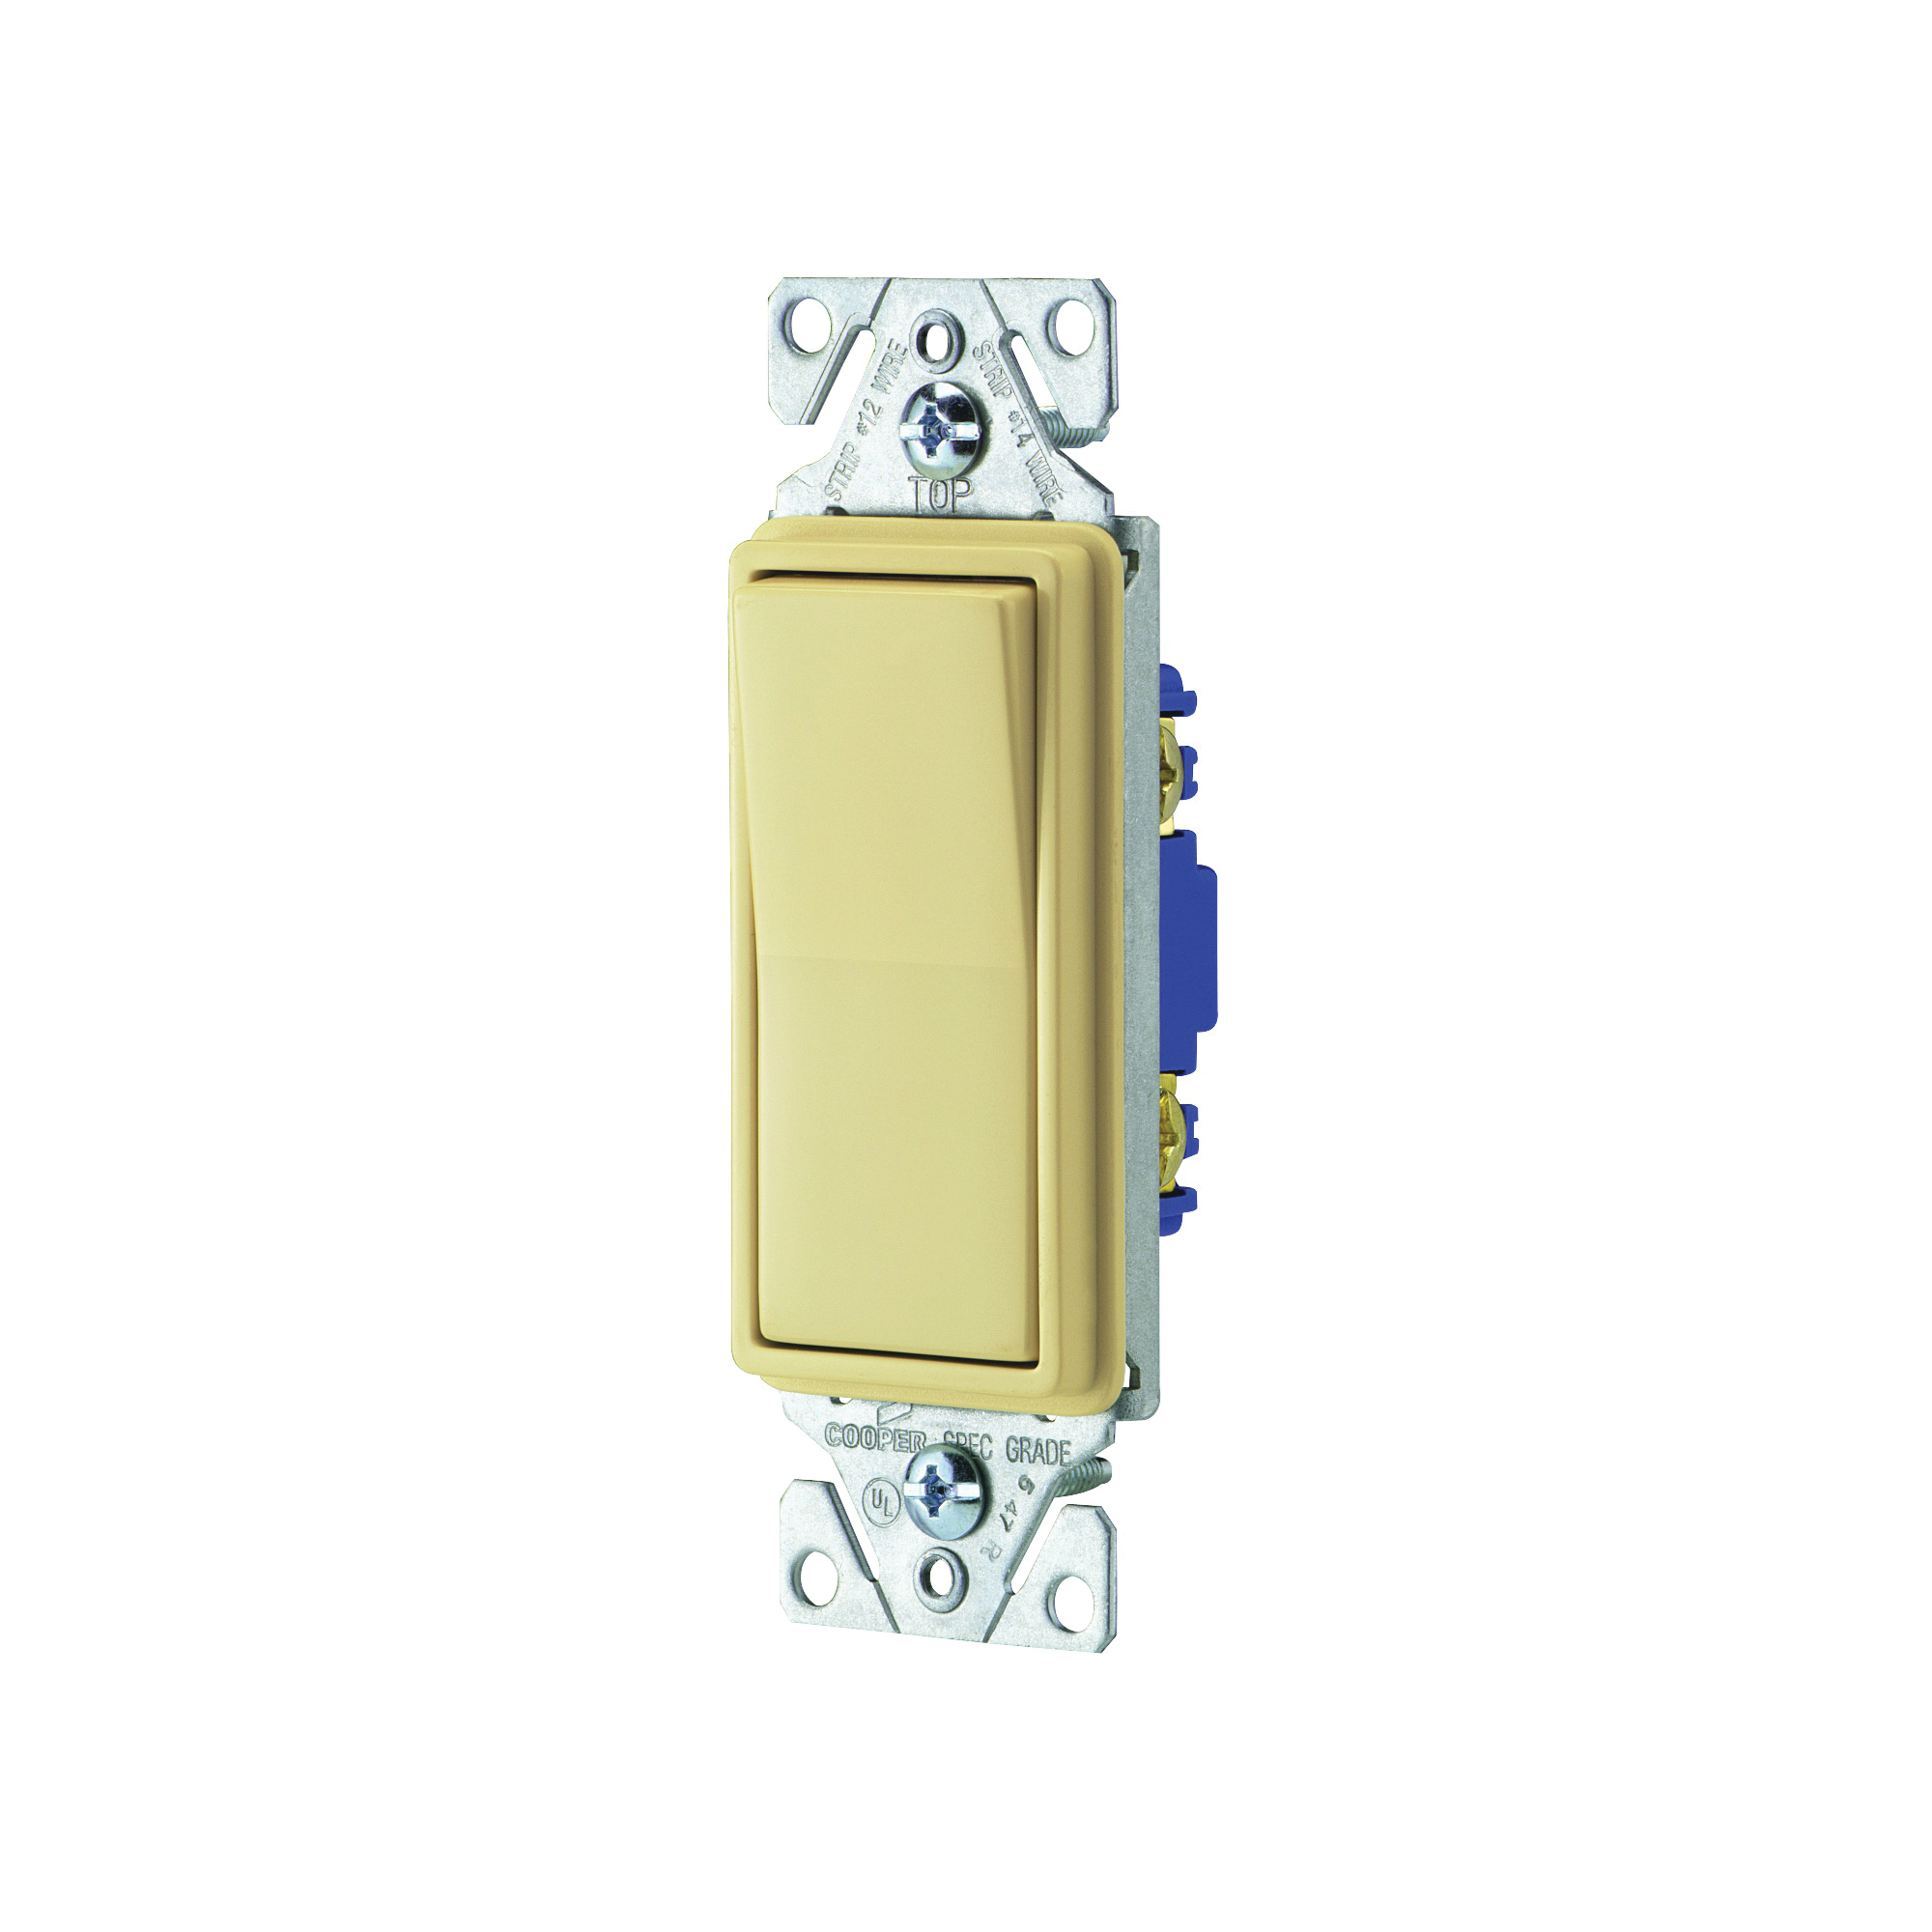 Picture of Eaton Wiring Devices 7500 Series 7501V Rocker Switch, 15 A, 120/277 V, Single-Pole, Lead Wire Terminal, Ivory